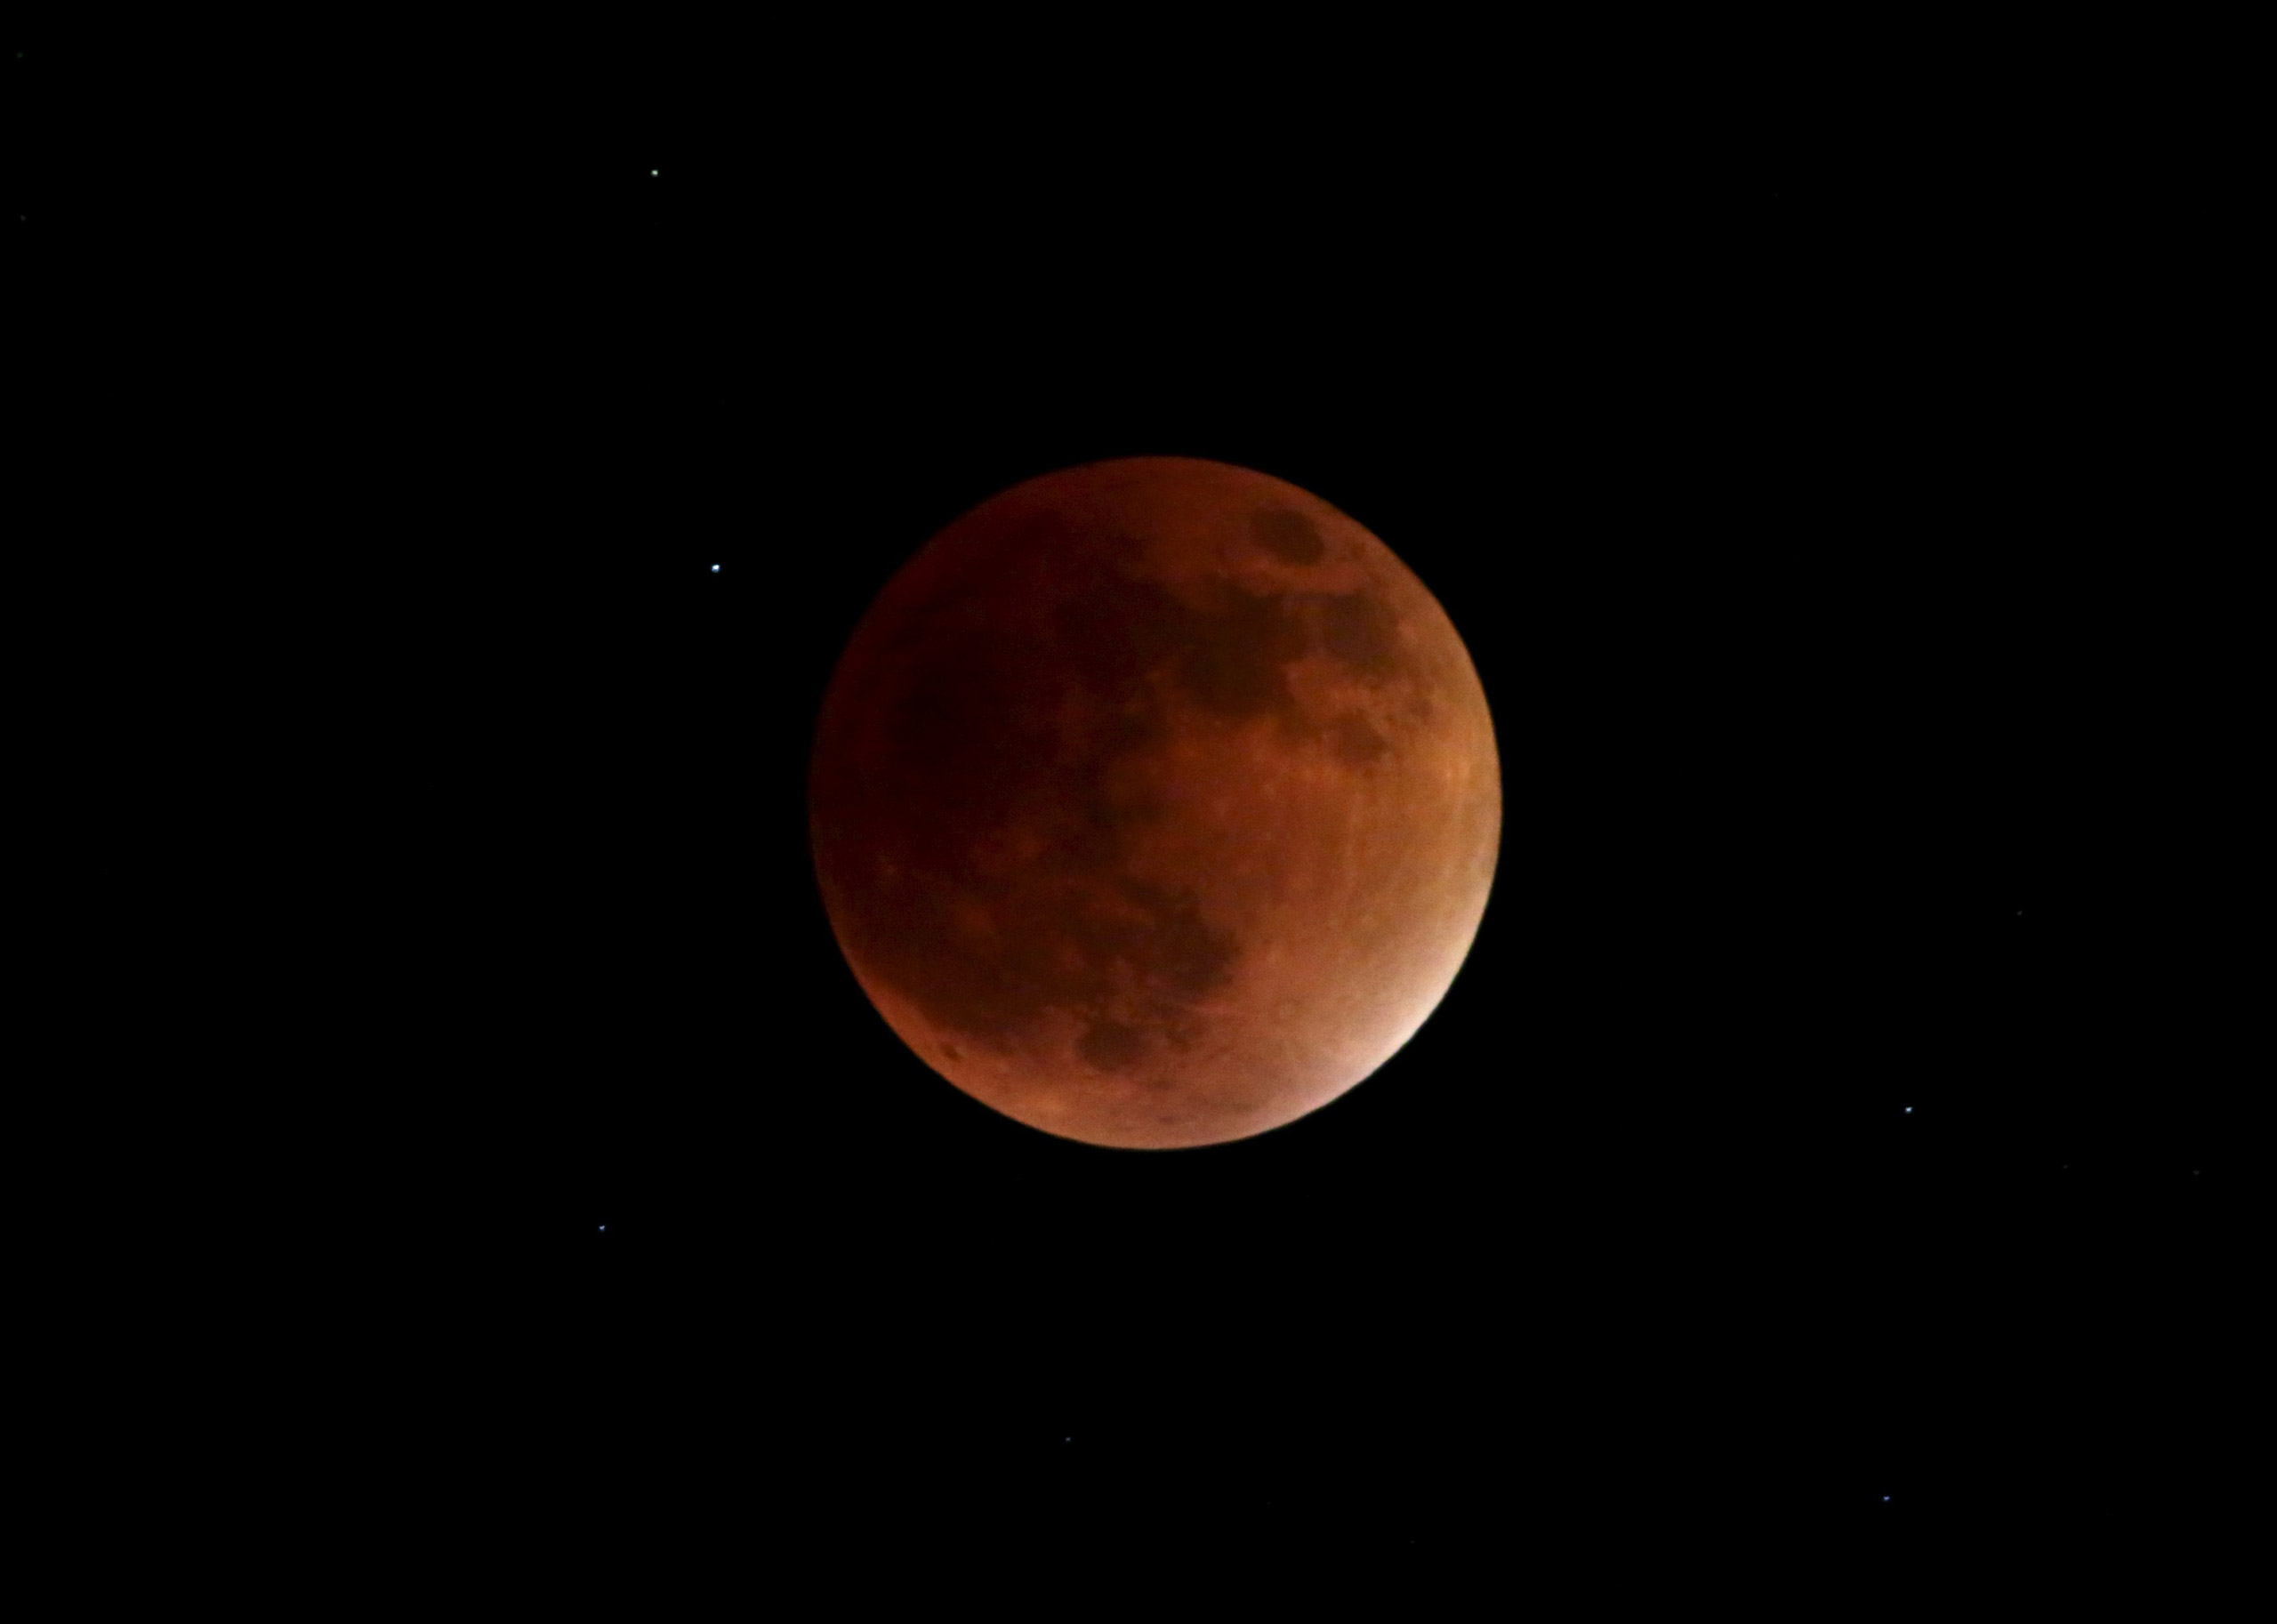 The supermoon appears red during the total lunar eclipse in the sky over Port-of-Spain on Sept. 27, 2015.